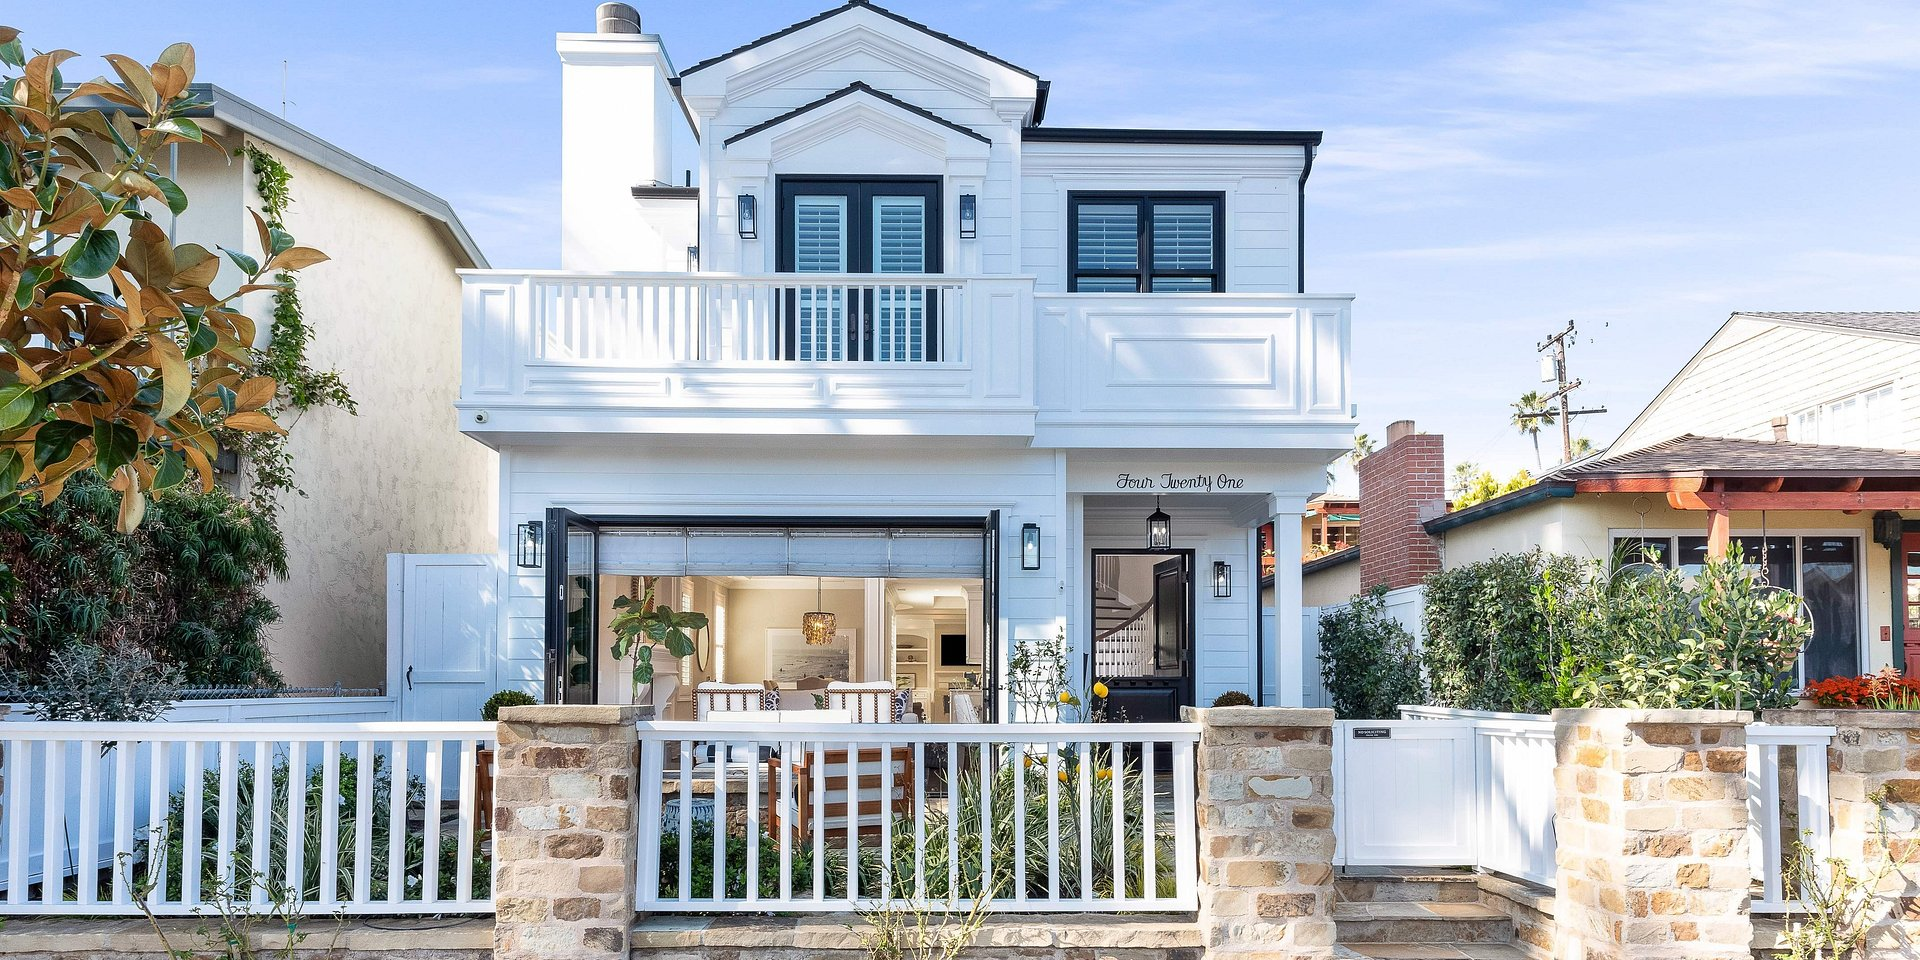 Coldwell Banker Realty Lists a Corona del Mar Property for $3.995 MillionUntitled